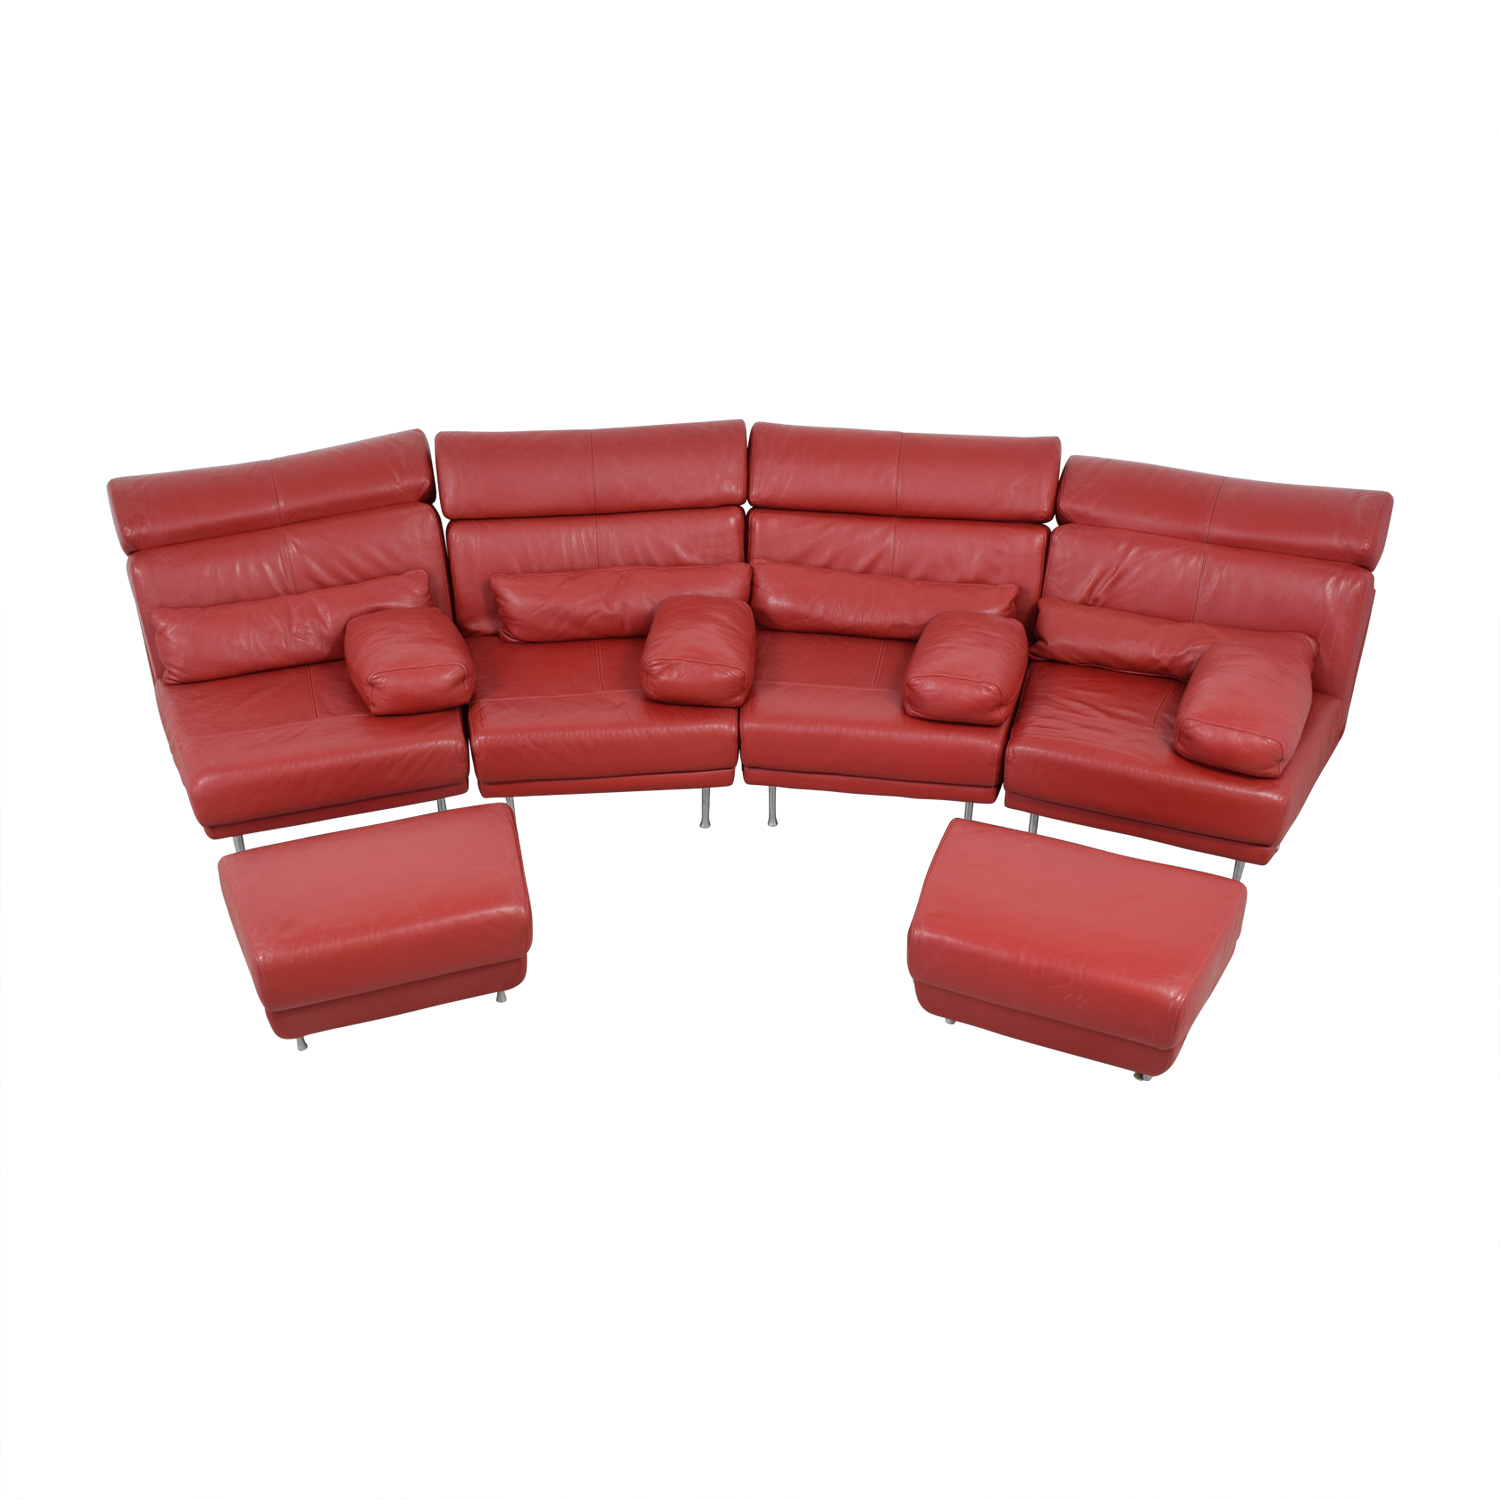 Astounding 90 Off Natuzzi Natuzzi Red Leather Sectional With Two Ottomans Sofas Pabps2019 Chair Design Images Pabps2019Com